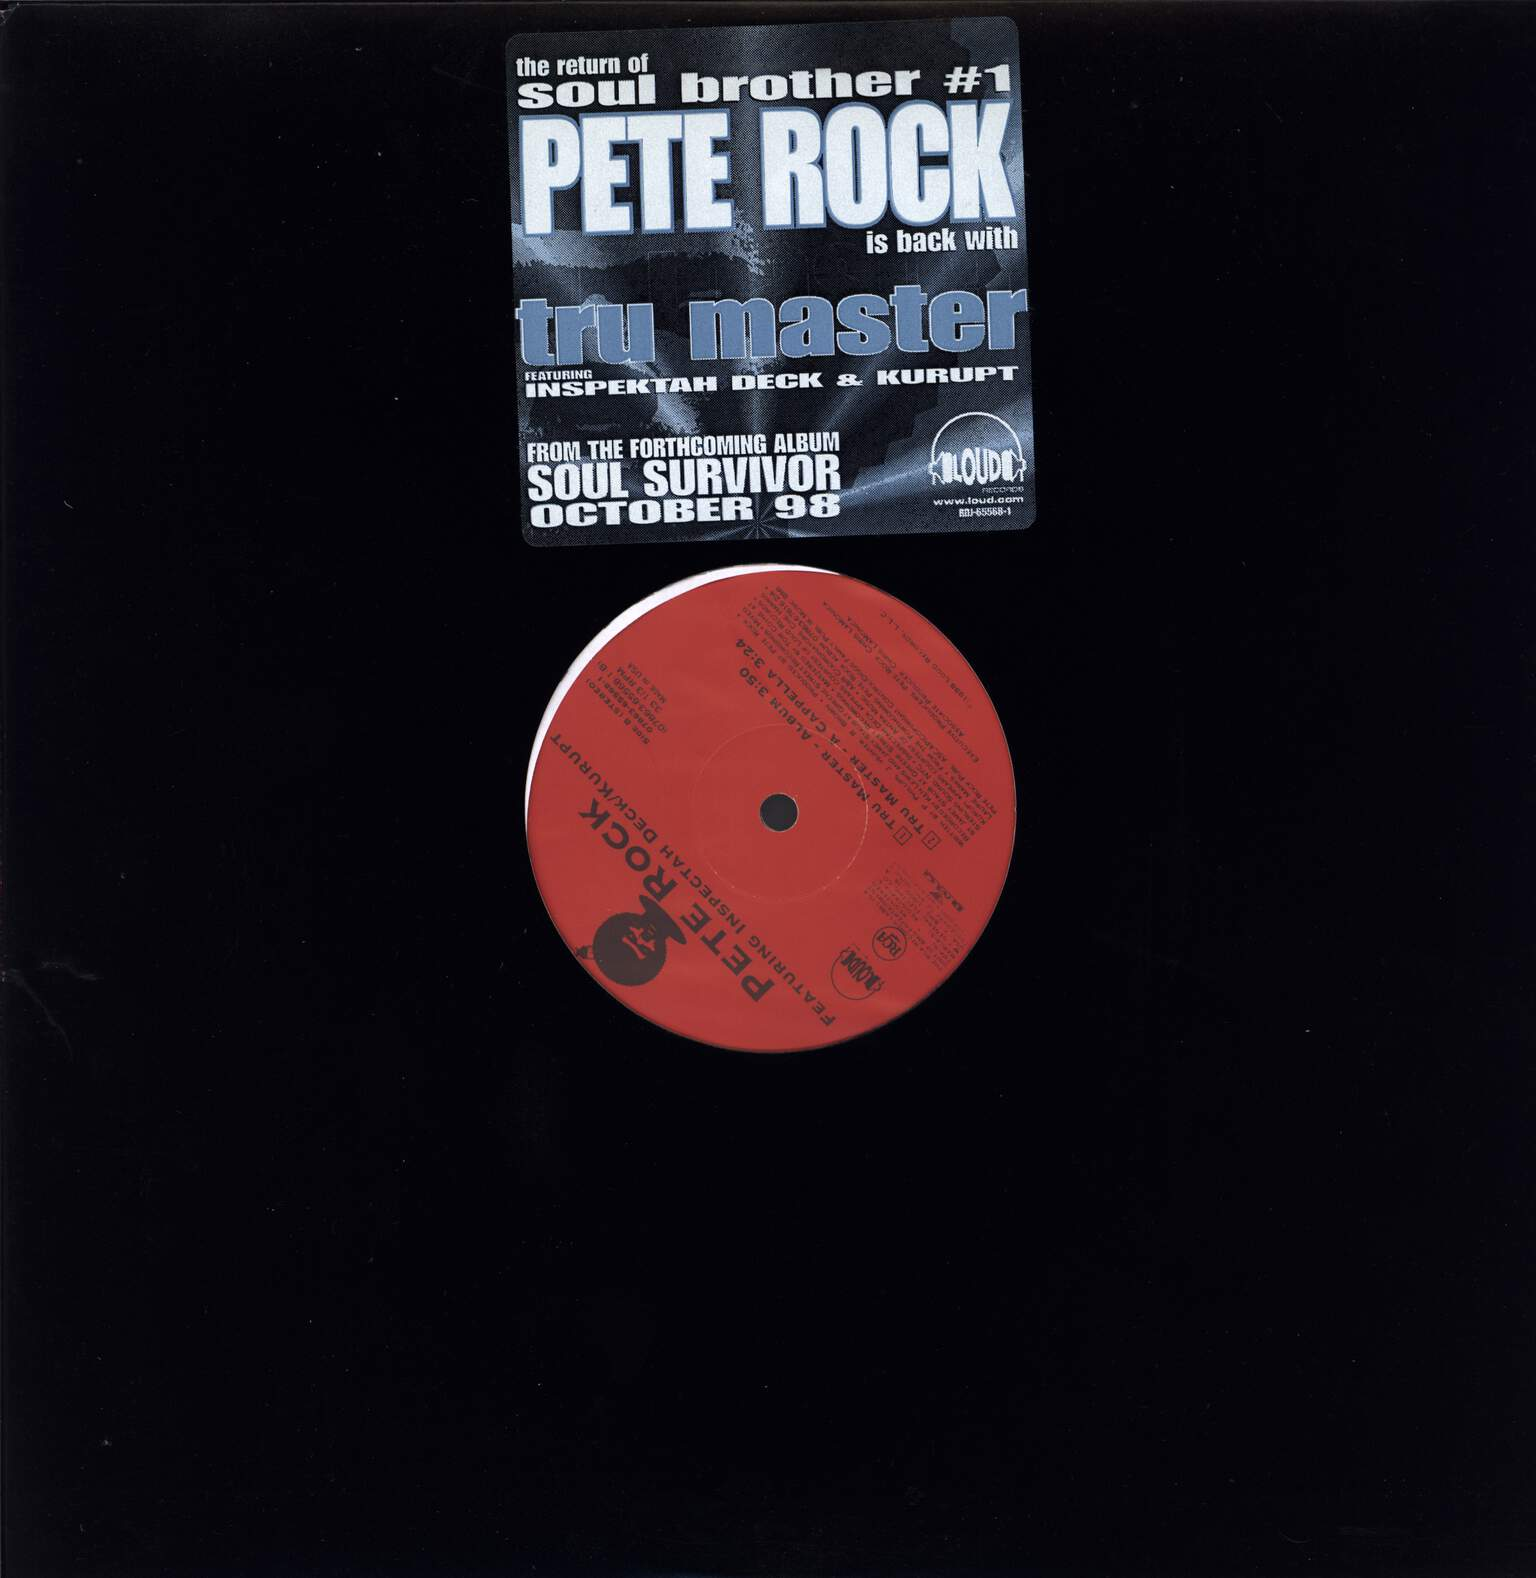 "Pete Rock: Tru Master, 12"" Maxi Single (Vinyl)"